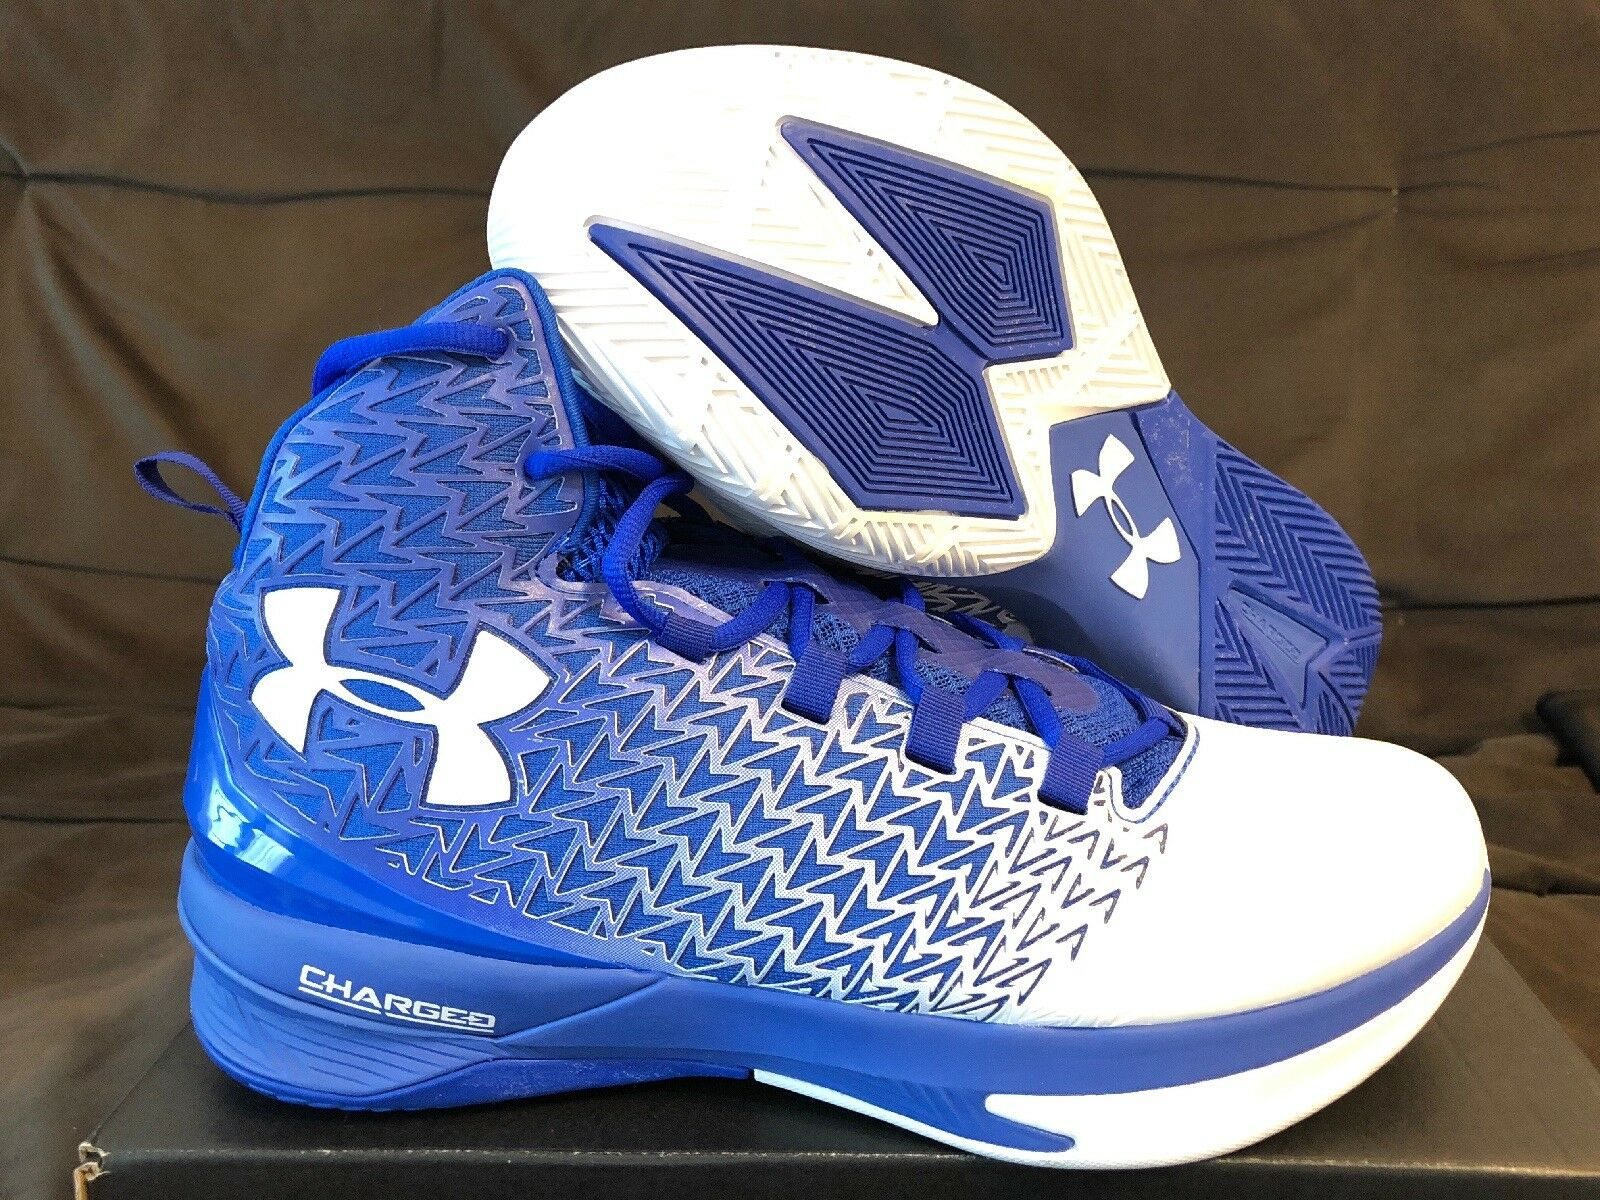 UNDER ARMOUR Clutchfit Drive 3 1269274 Uomo Basketball Shoes Size 10.5 White/Blue 1269274 3 eb427a